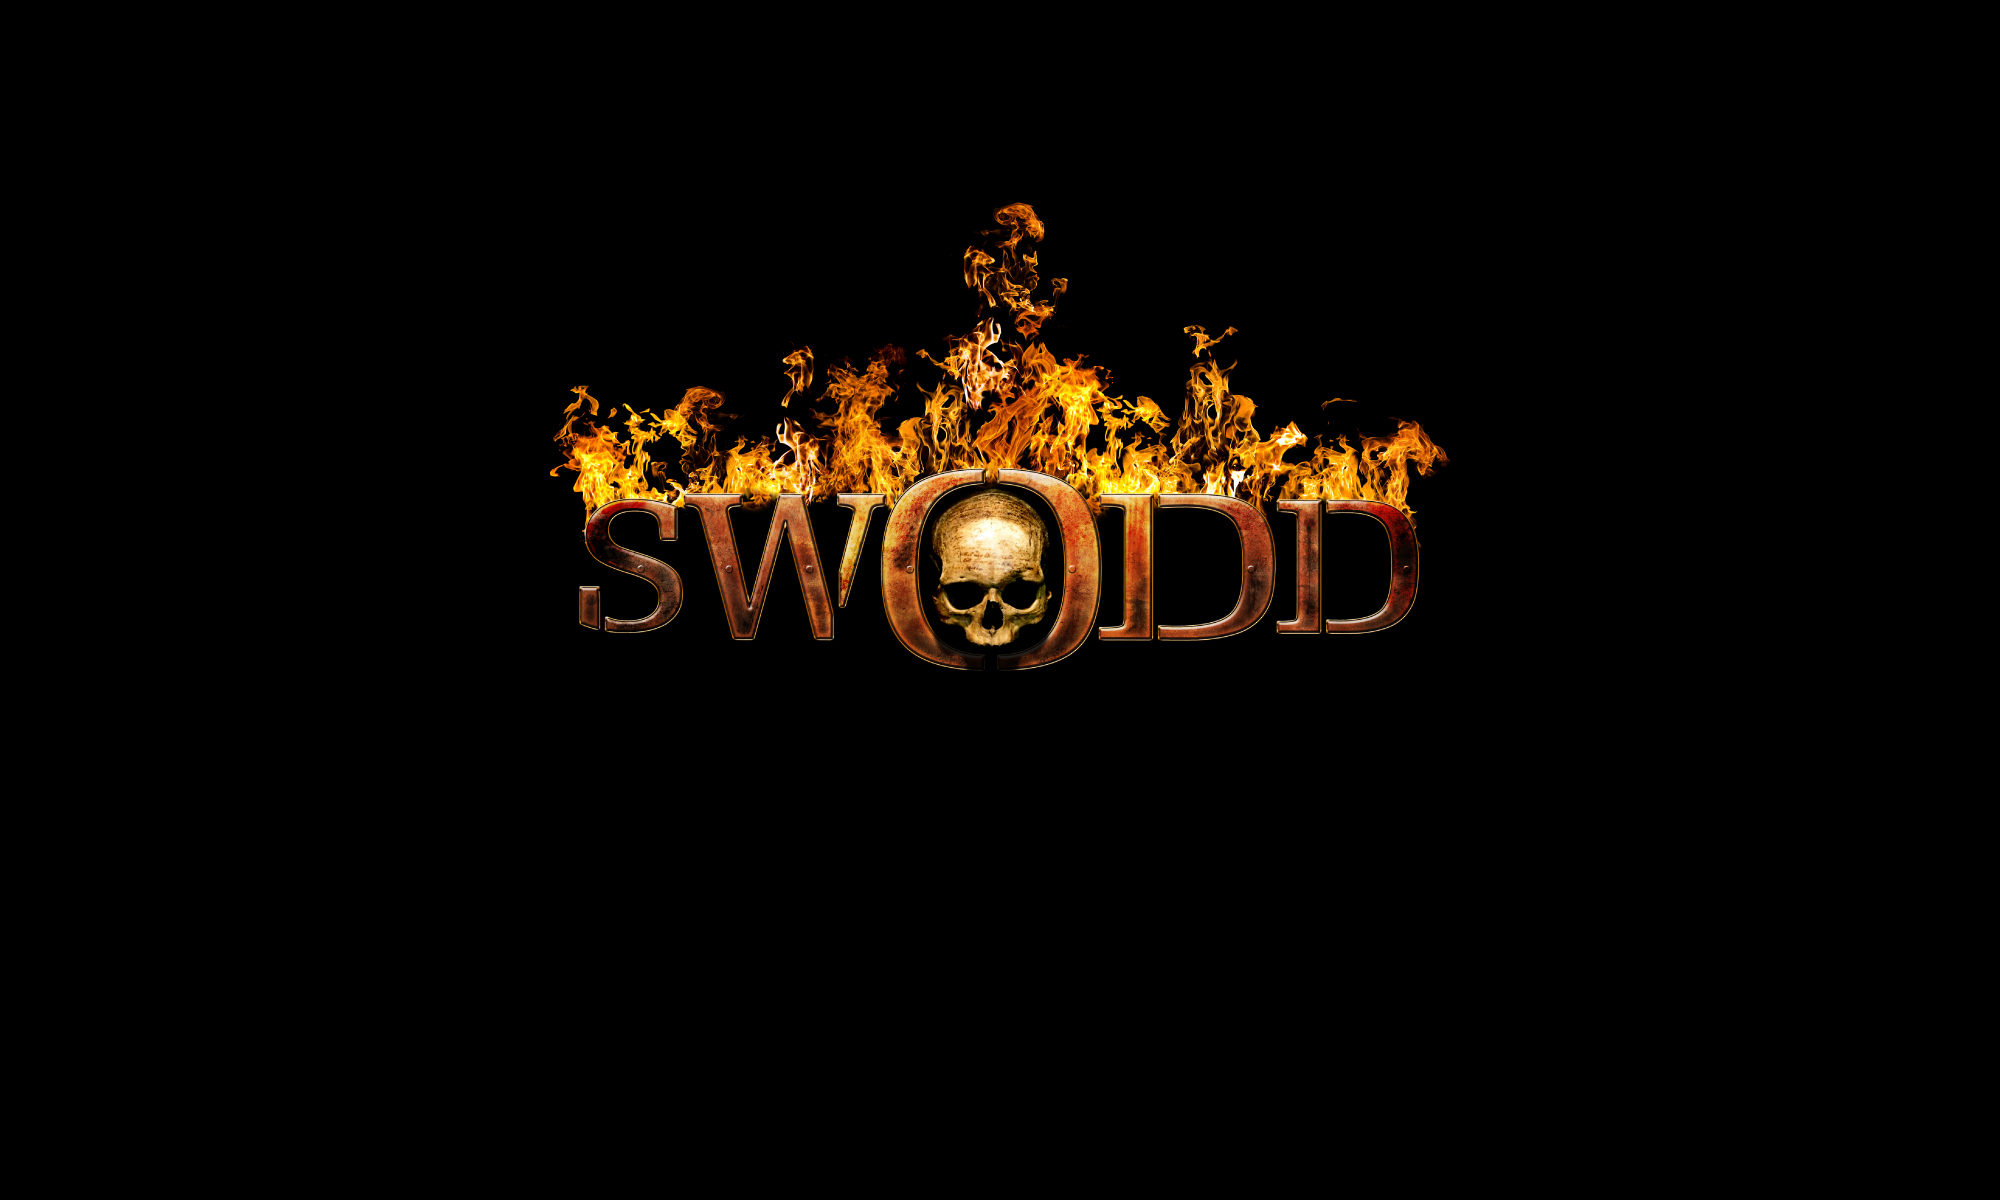 SWODD Official Website